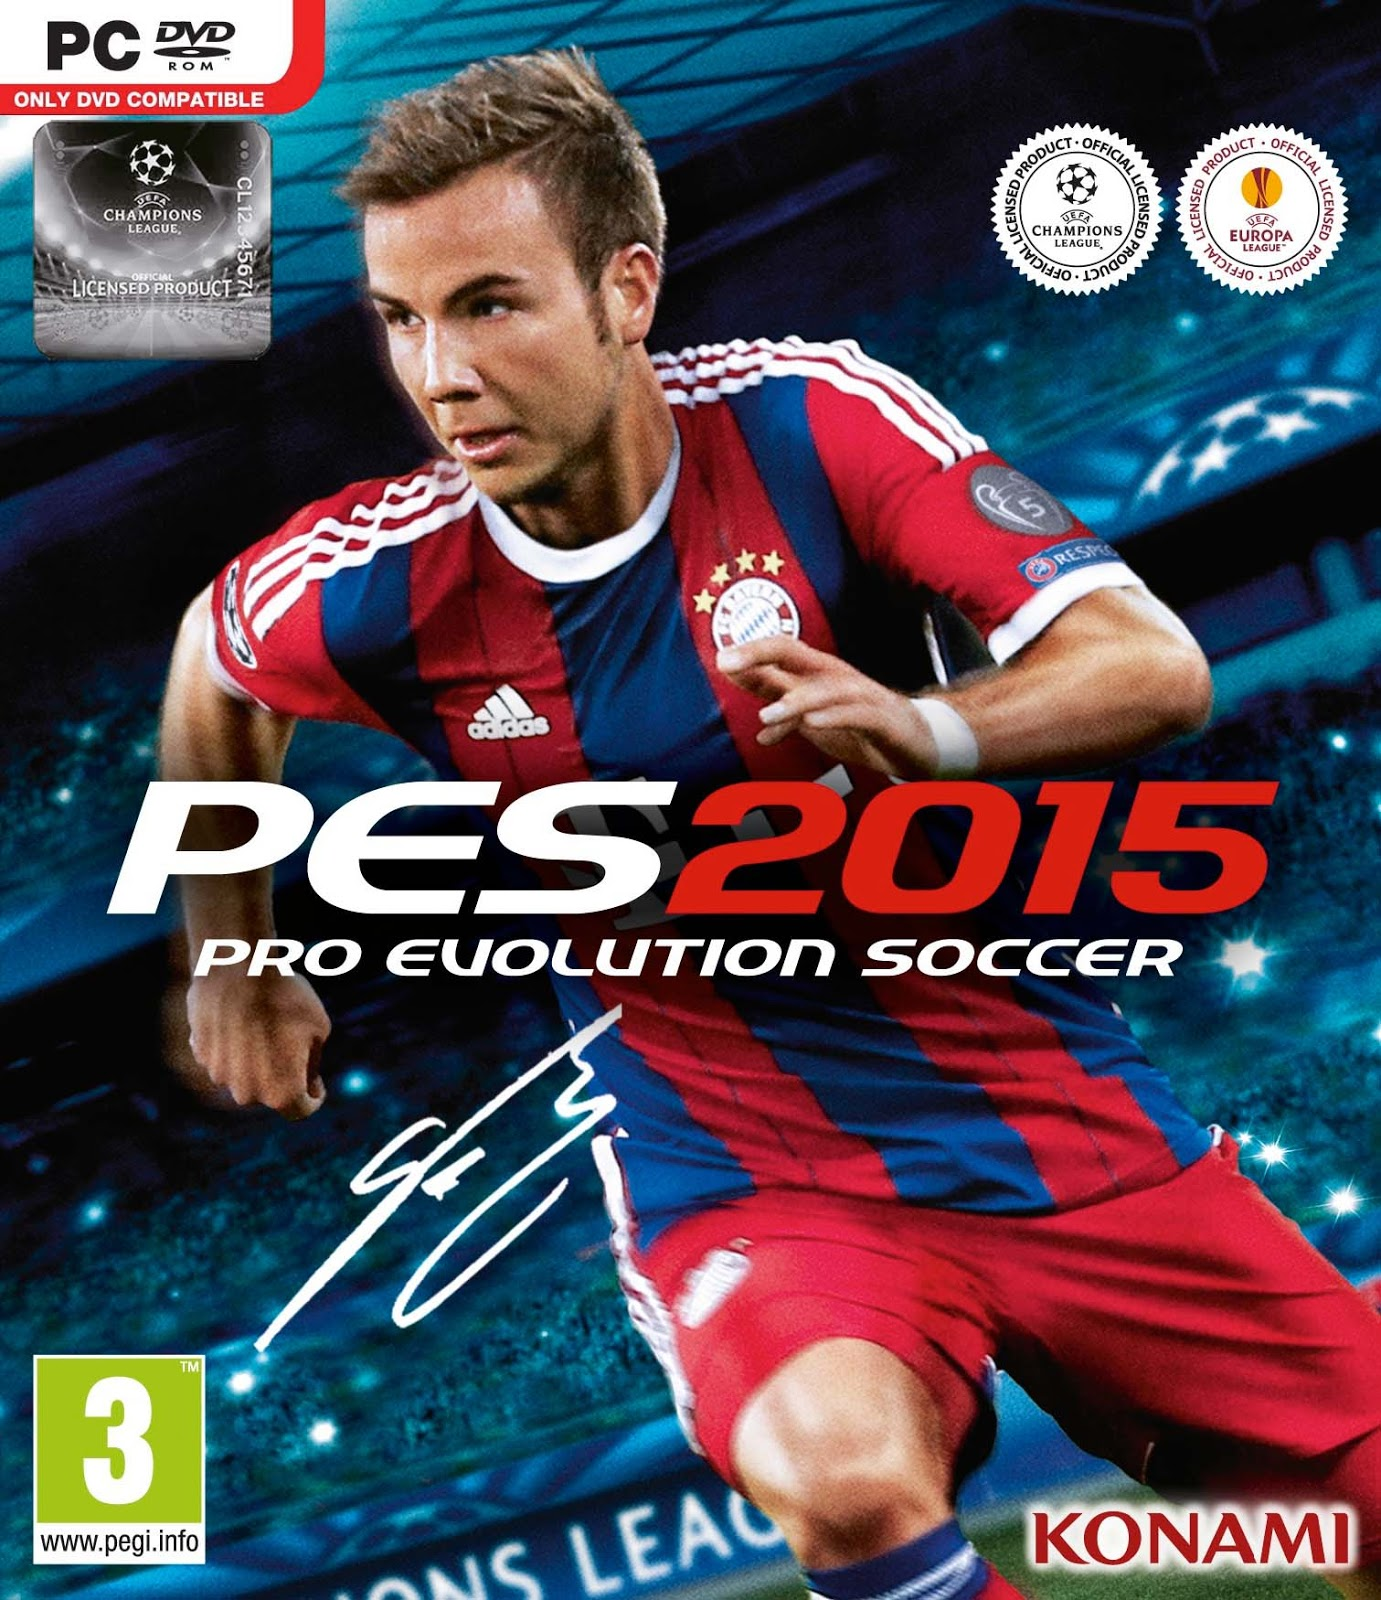 PES_2015_PC_Packshot - Copy